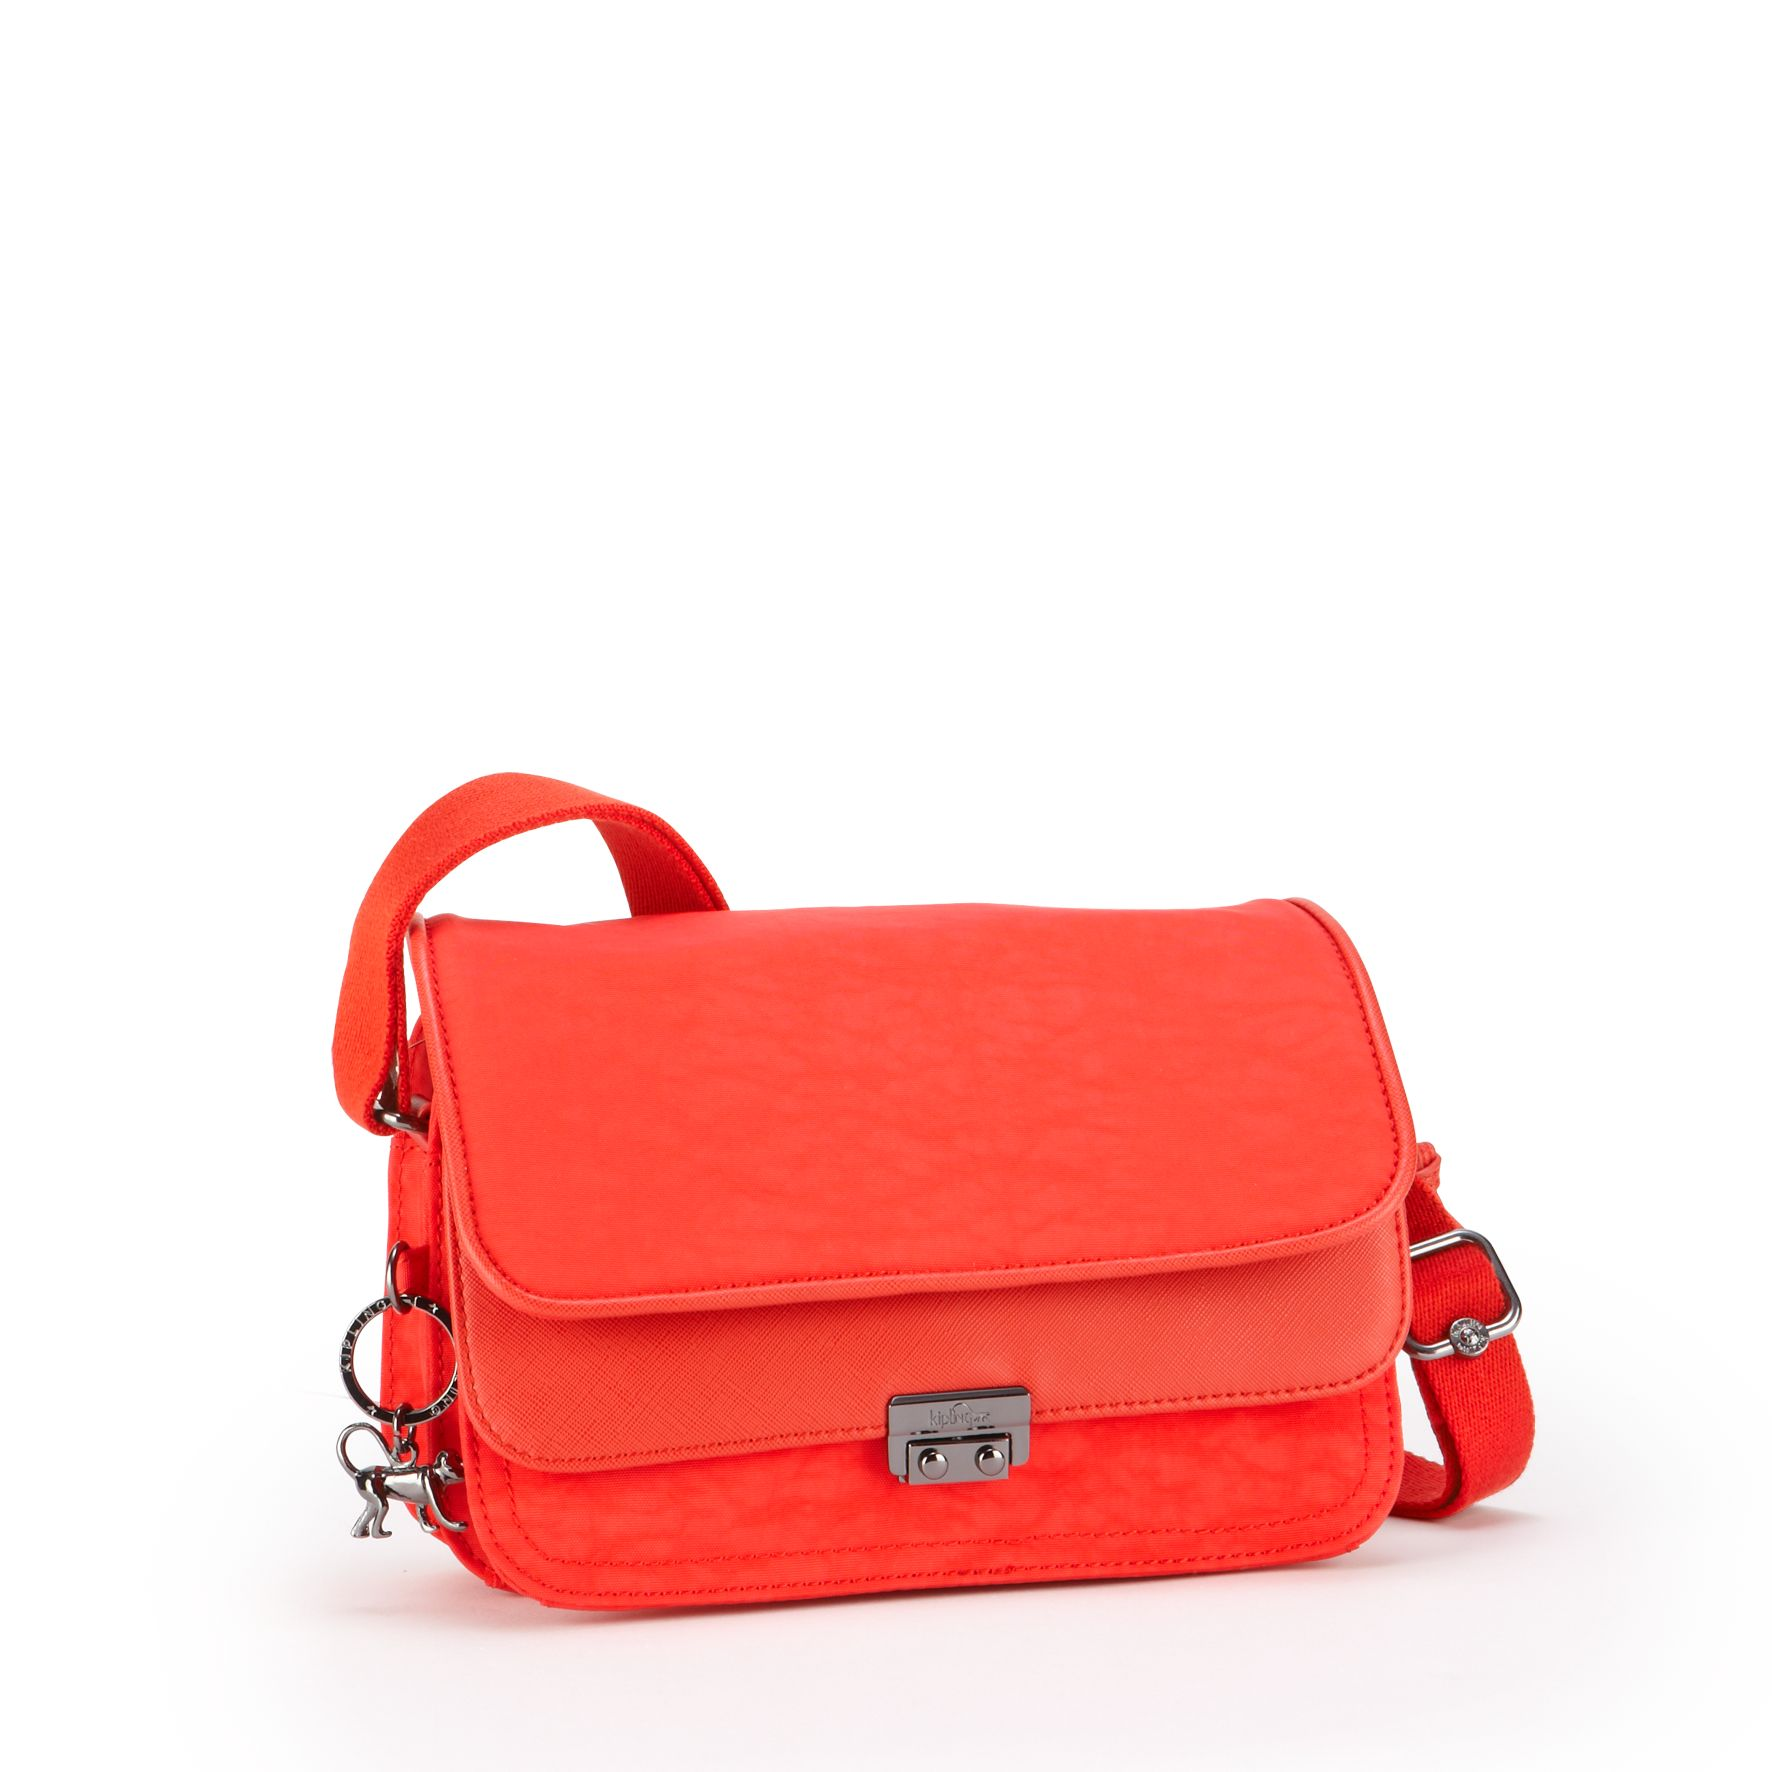 Joana small shoulder bag